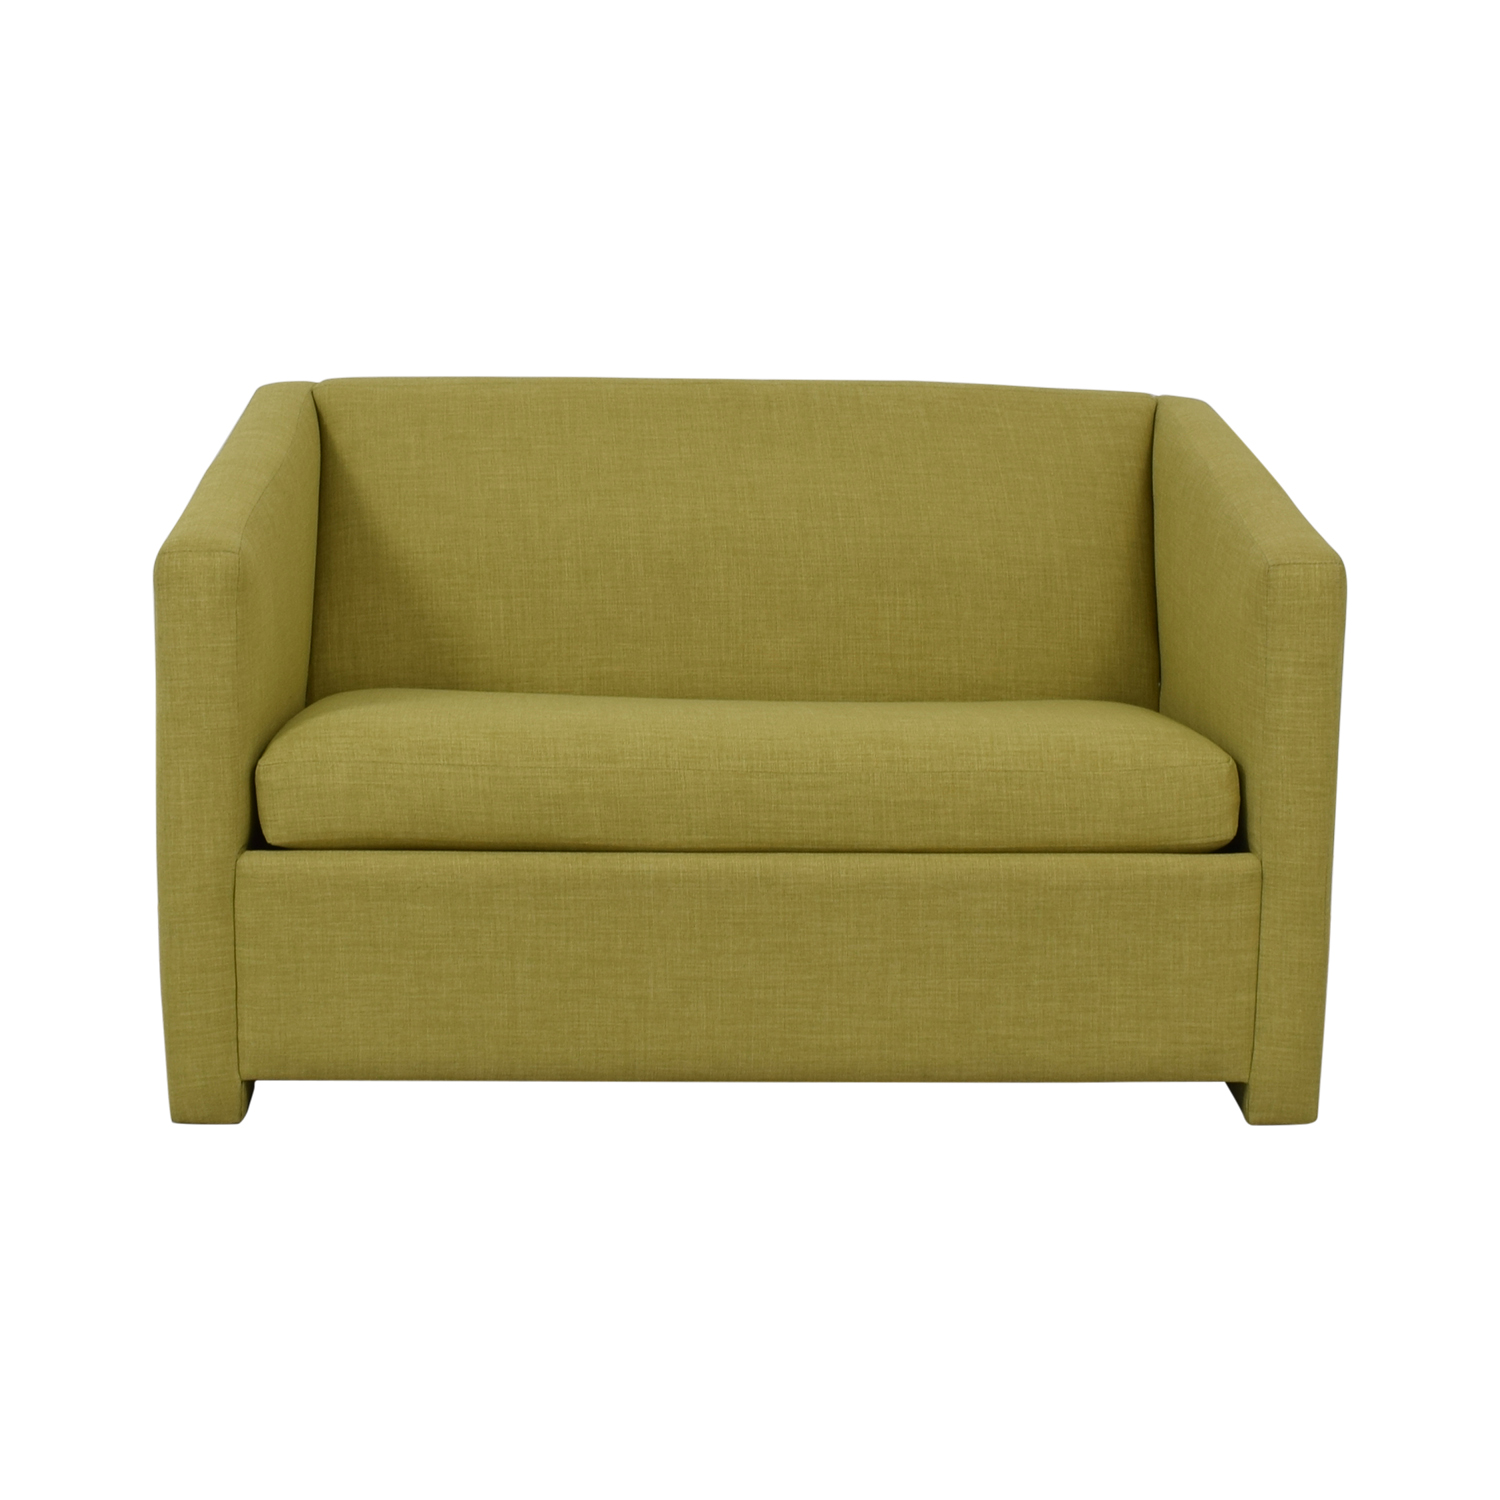 buy CB2 CB2 Lime Green Loveseat with Pullout Bed online